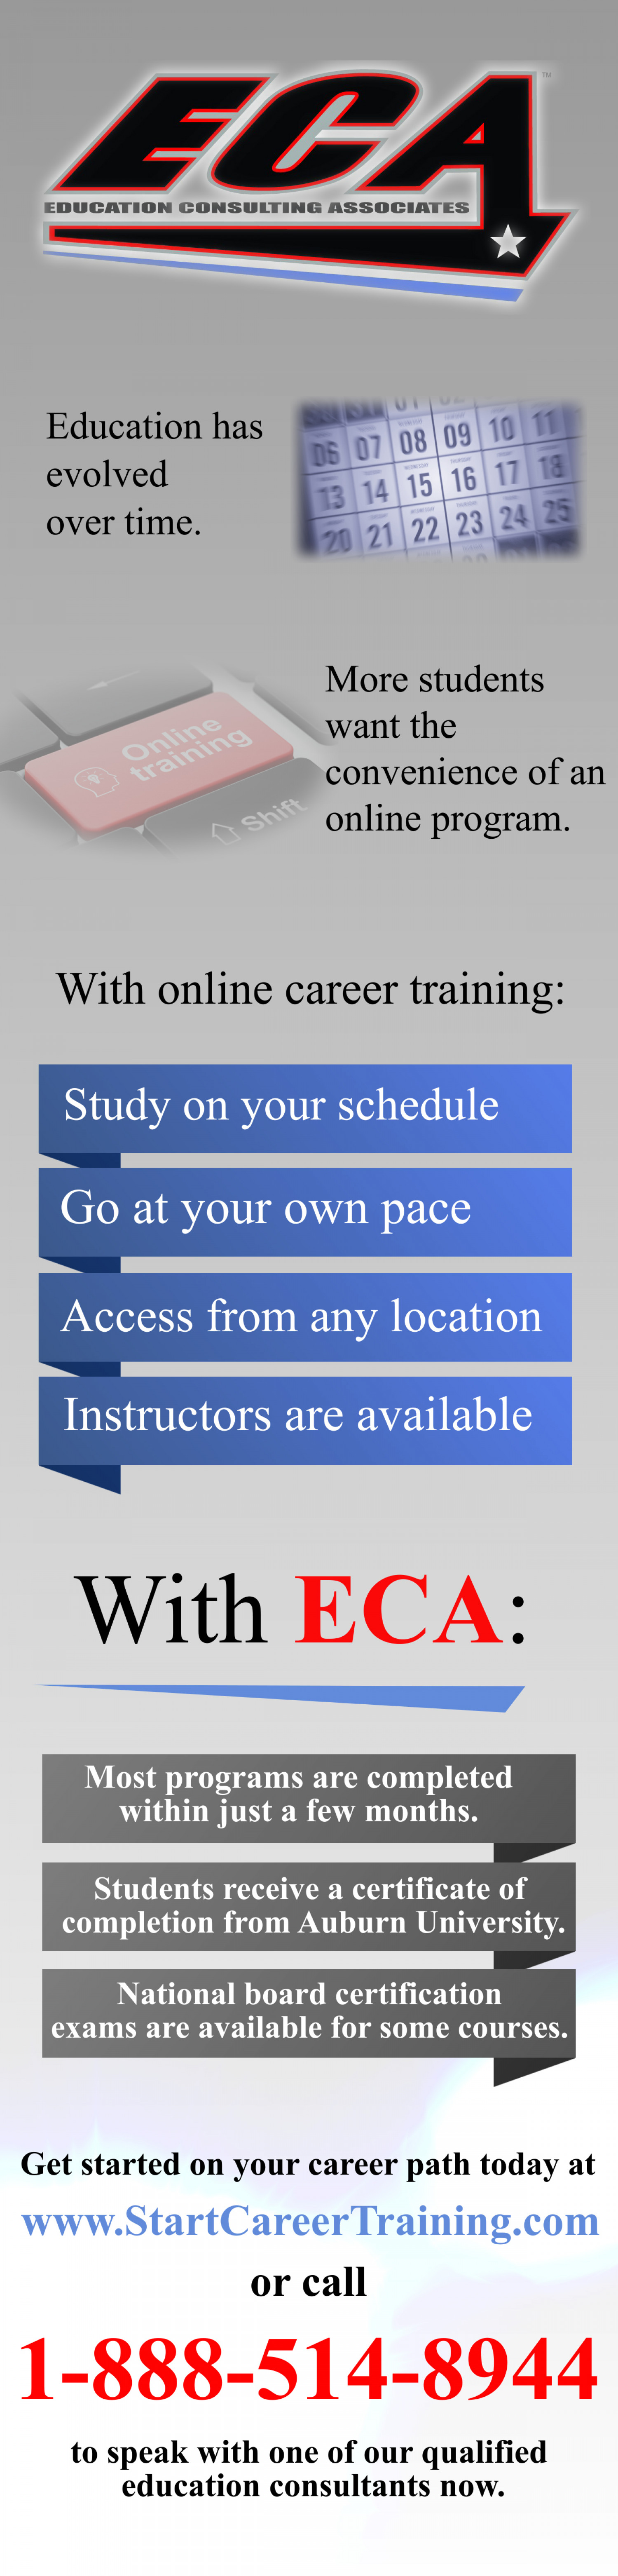 Why Online Career Training? Infographic